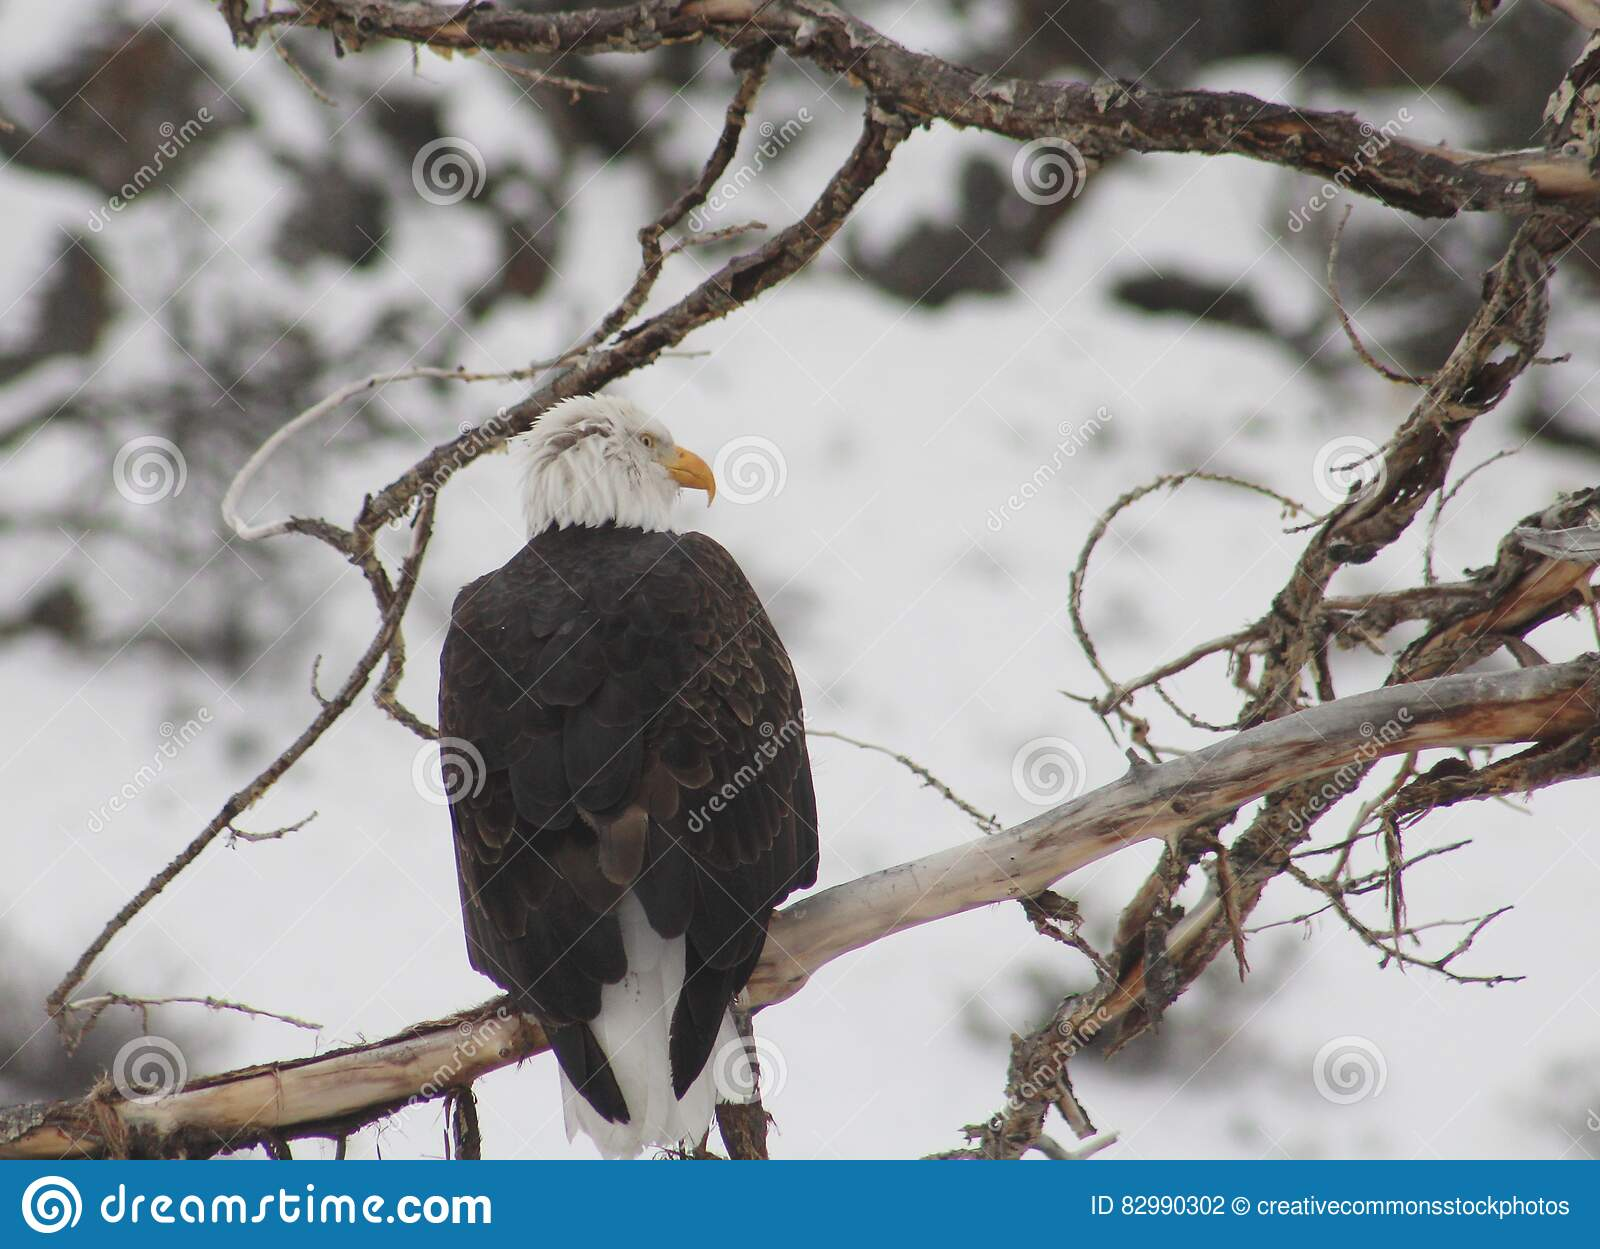 Download Black And White Bird On Top Of Brunch Of Tree Stock Photo - Image of stock, photo: 82990302